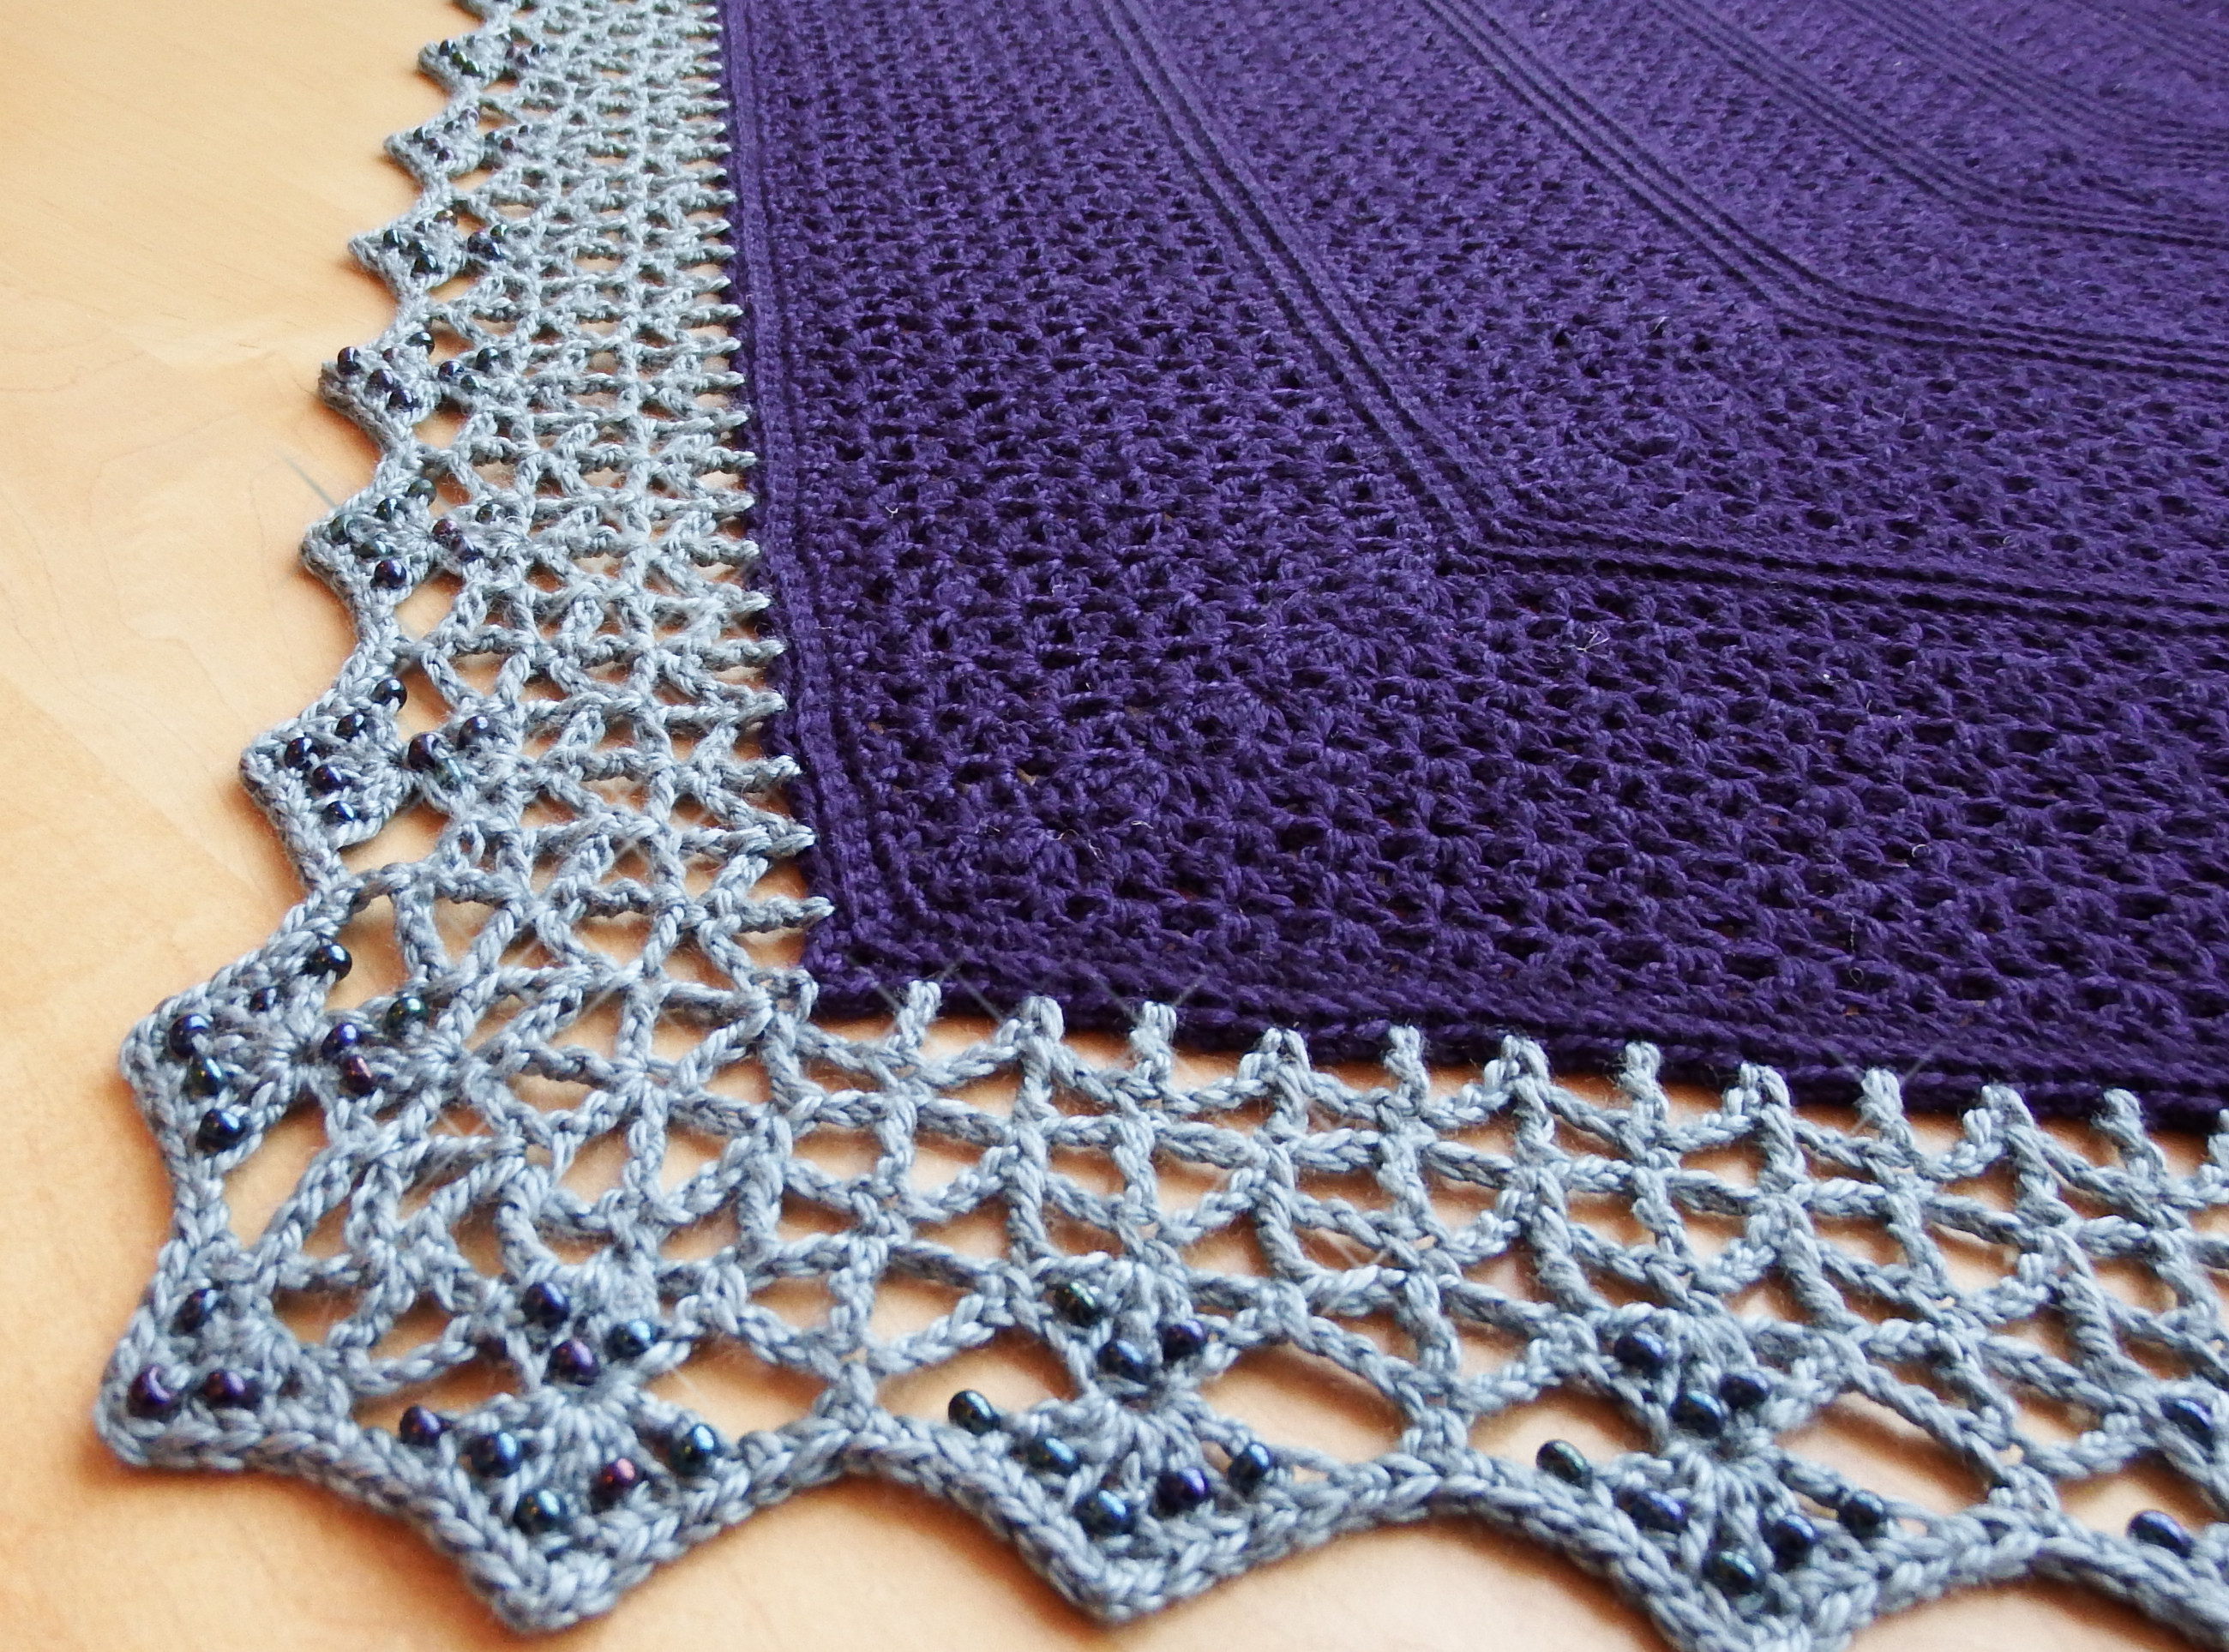 Crochet Edging Awesome Free Crochet Edging Patterns for Shawls Of Beautiful 50 Pictures Crochet Edging